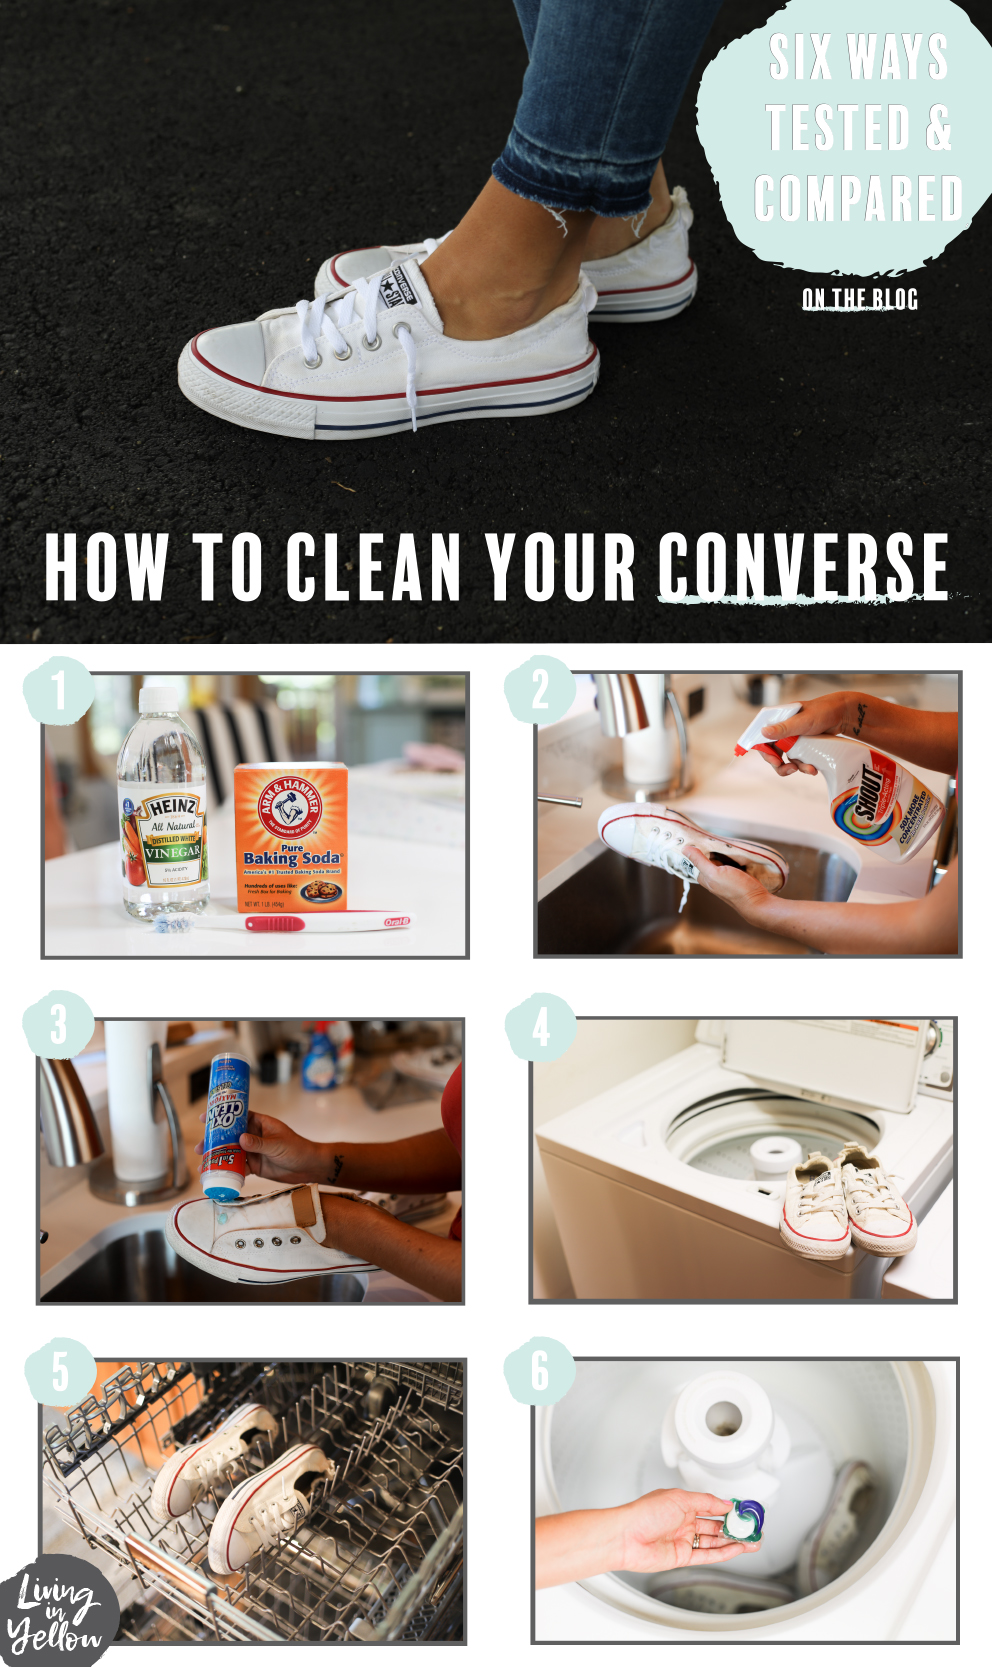 af159b76b501 How to Clean Your Converse  6 Methods Put To The Test!  - Living in ...